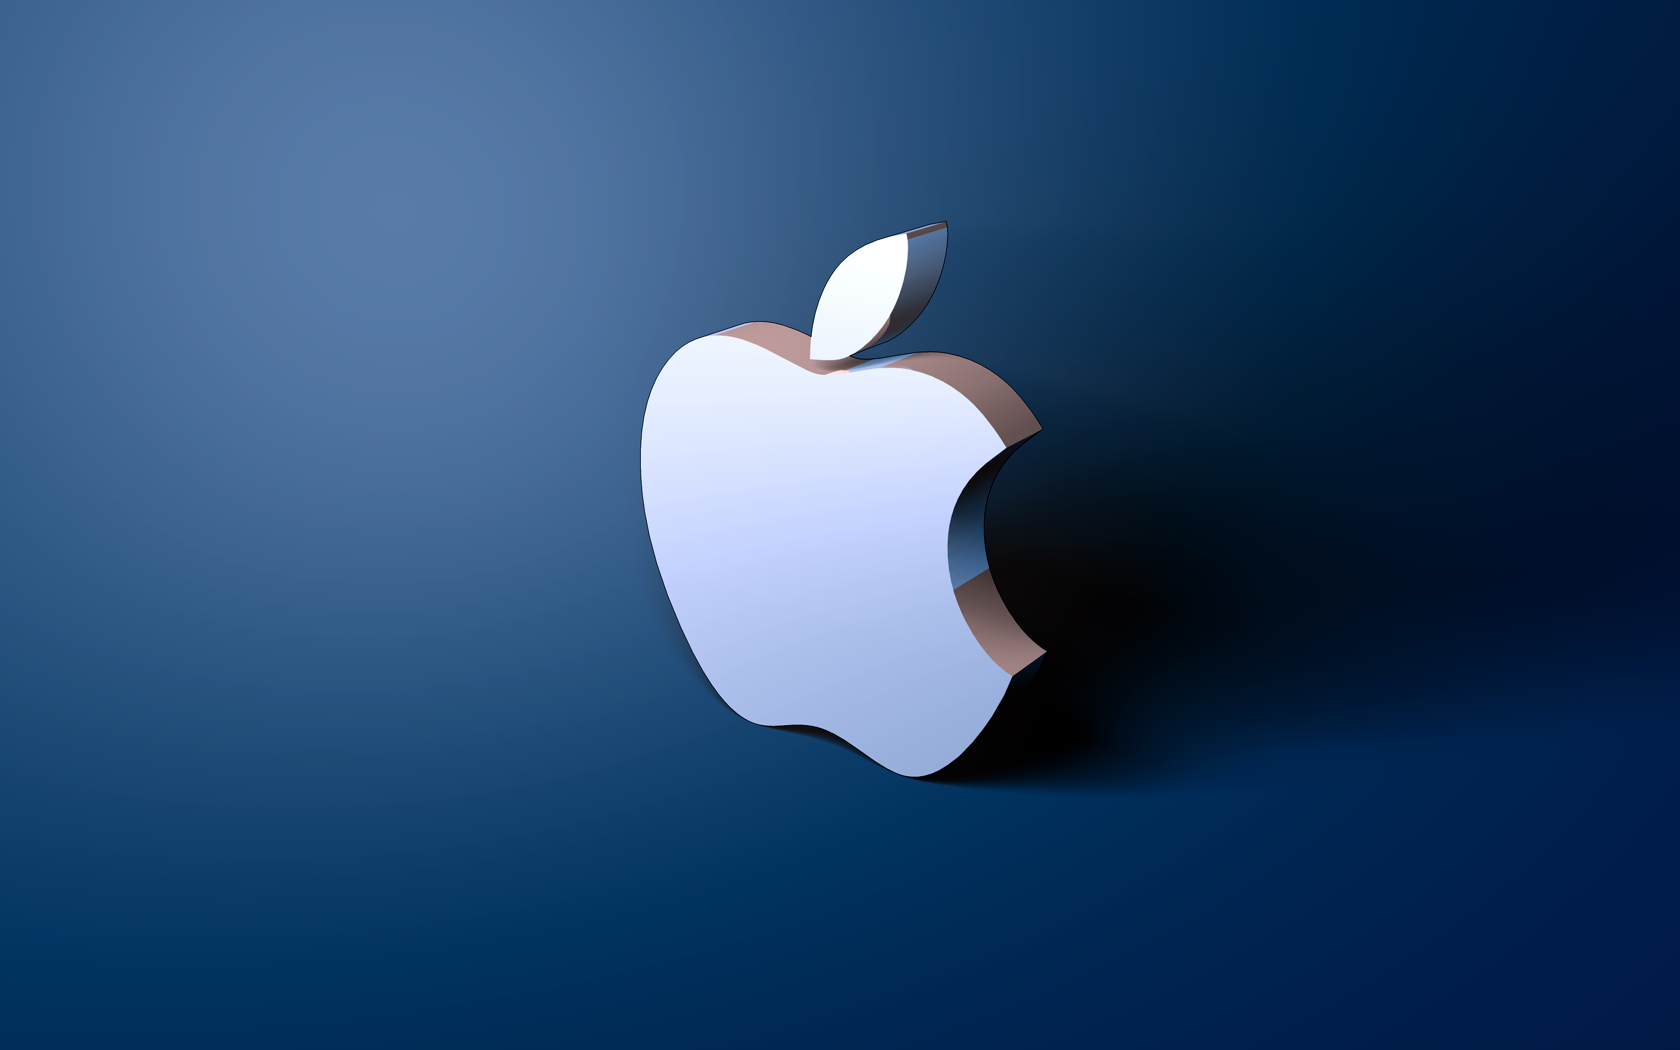 Apple Ipod Hd Wallpaper Download cool HD wallpapers here 1680x1050